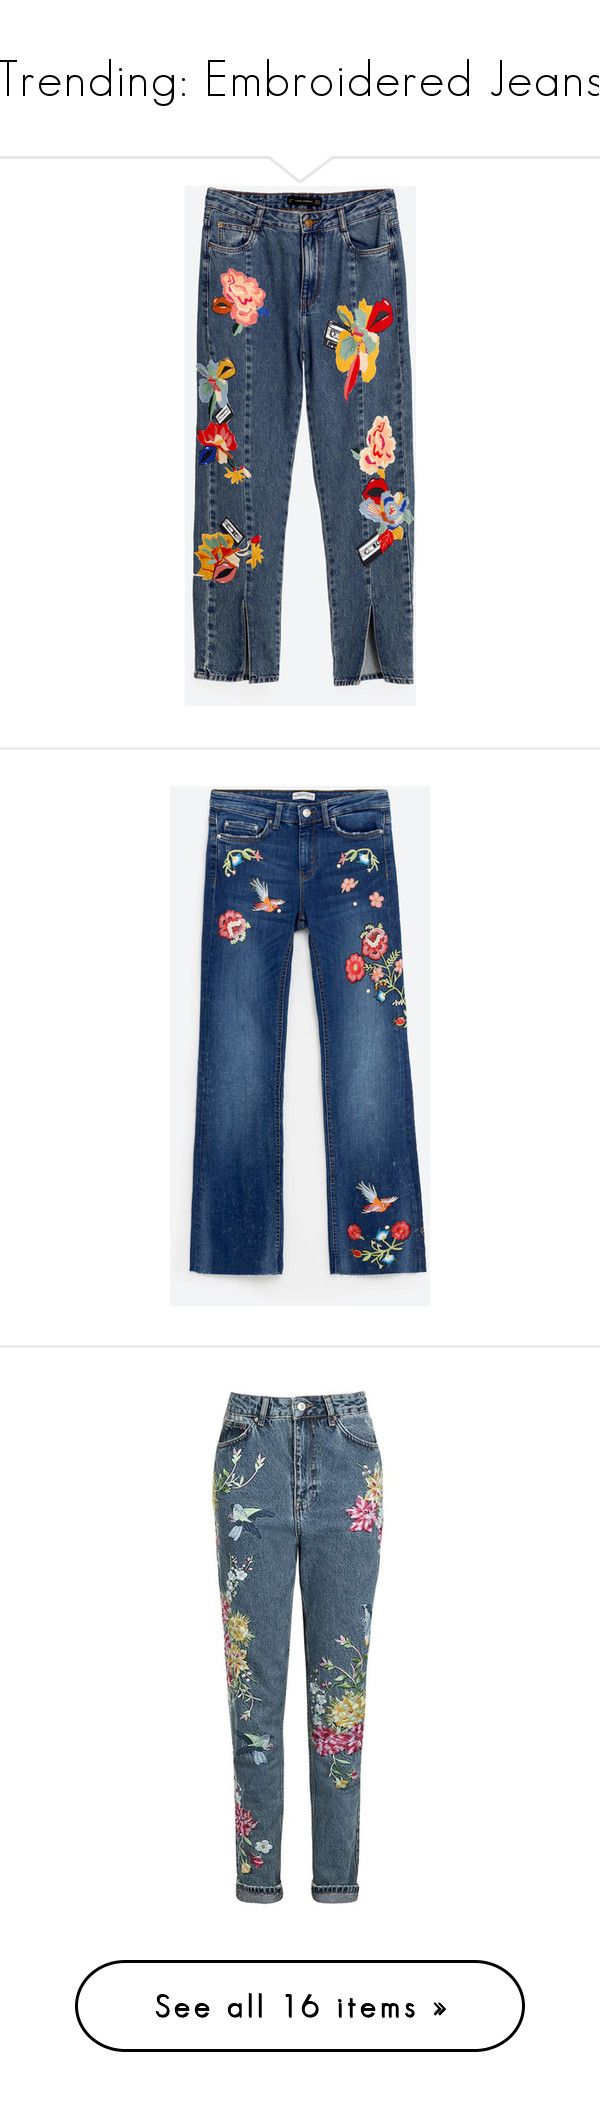 """Trending: Embroidered Jeans"" by euphemiasun97 ❤ liked on Polyvore featuring StreetStyle, MustHave, denim, ootd, embroidered, jeans, bottoms, zara, pants and blue jeans"